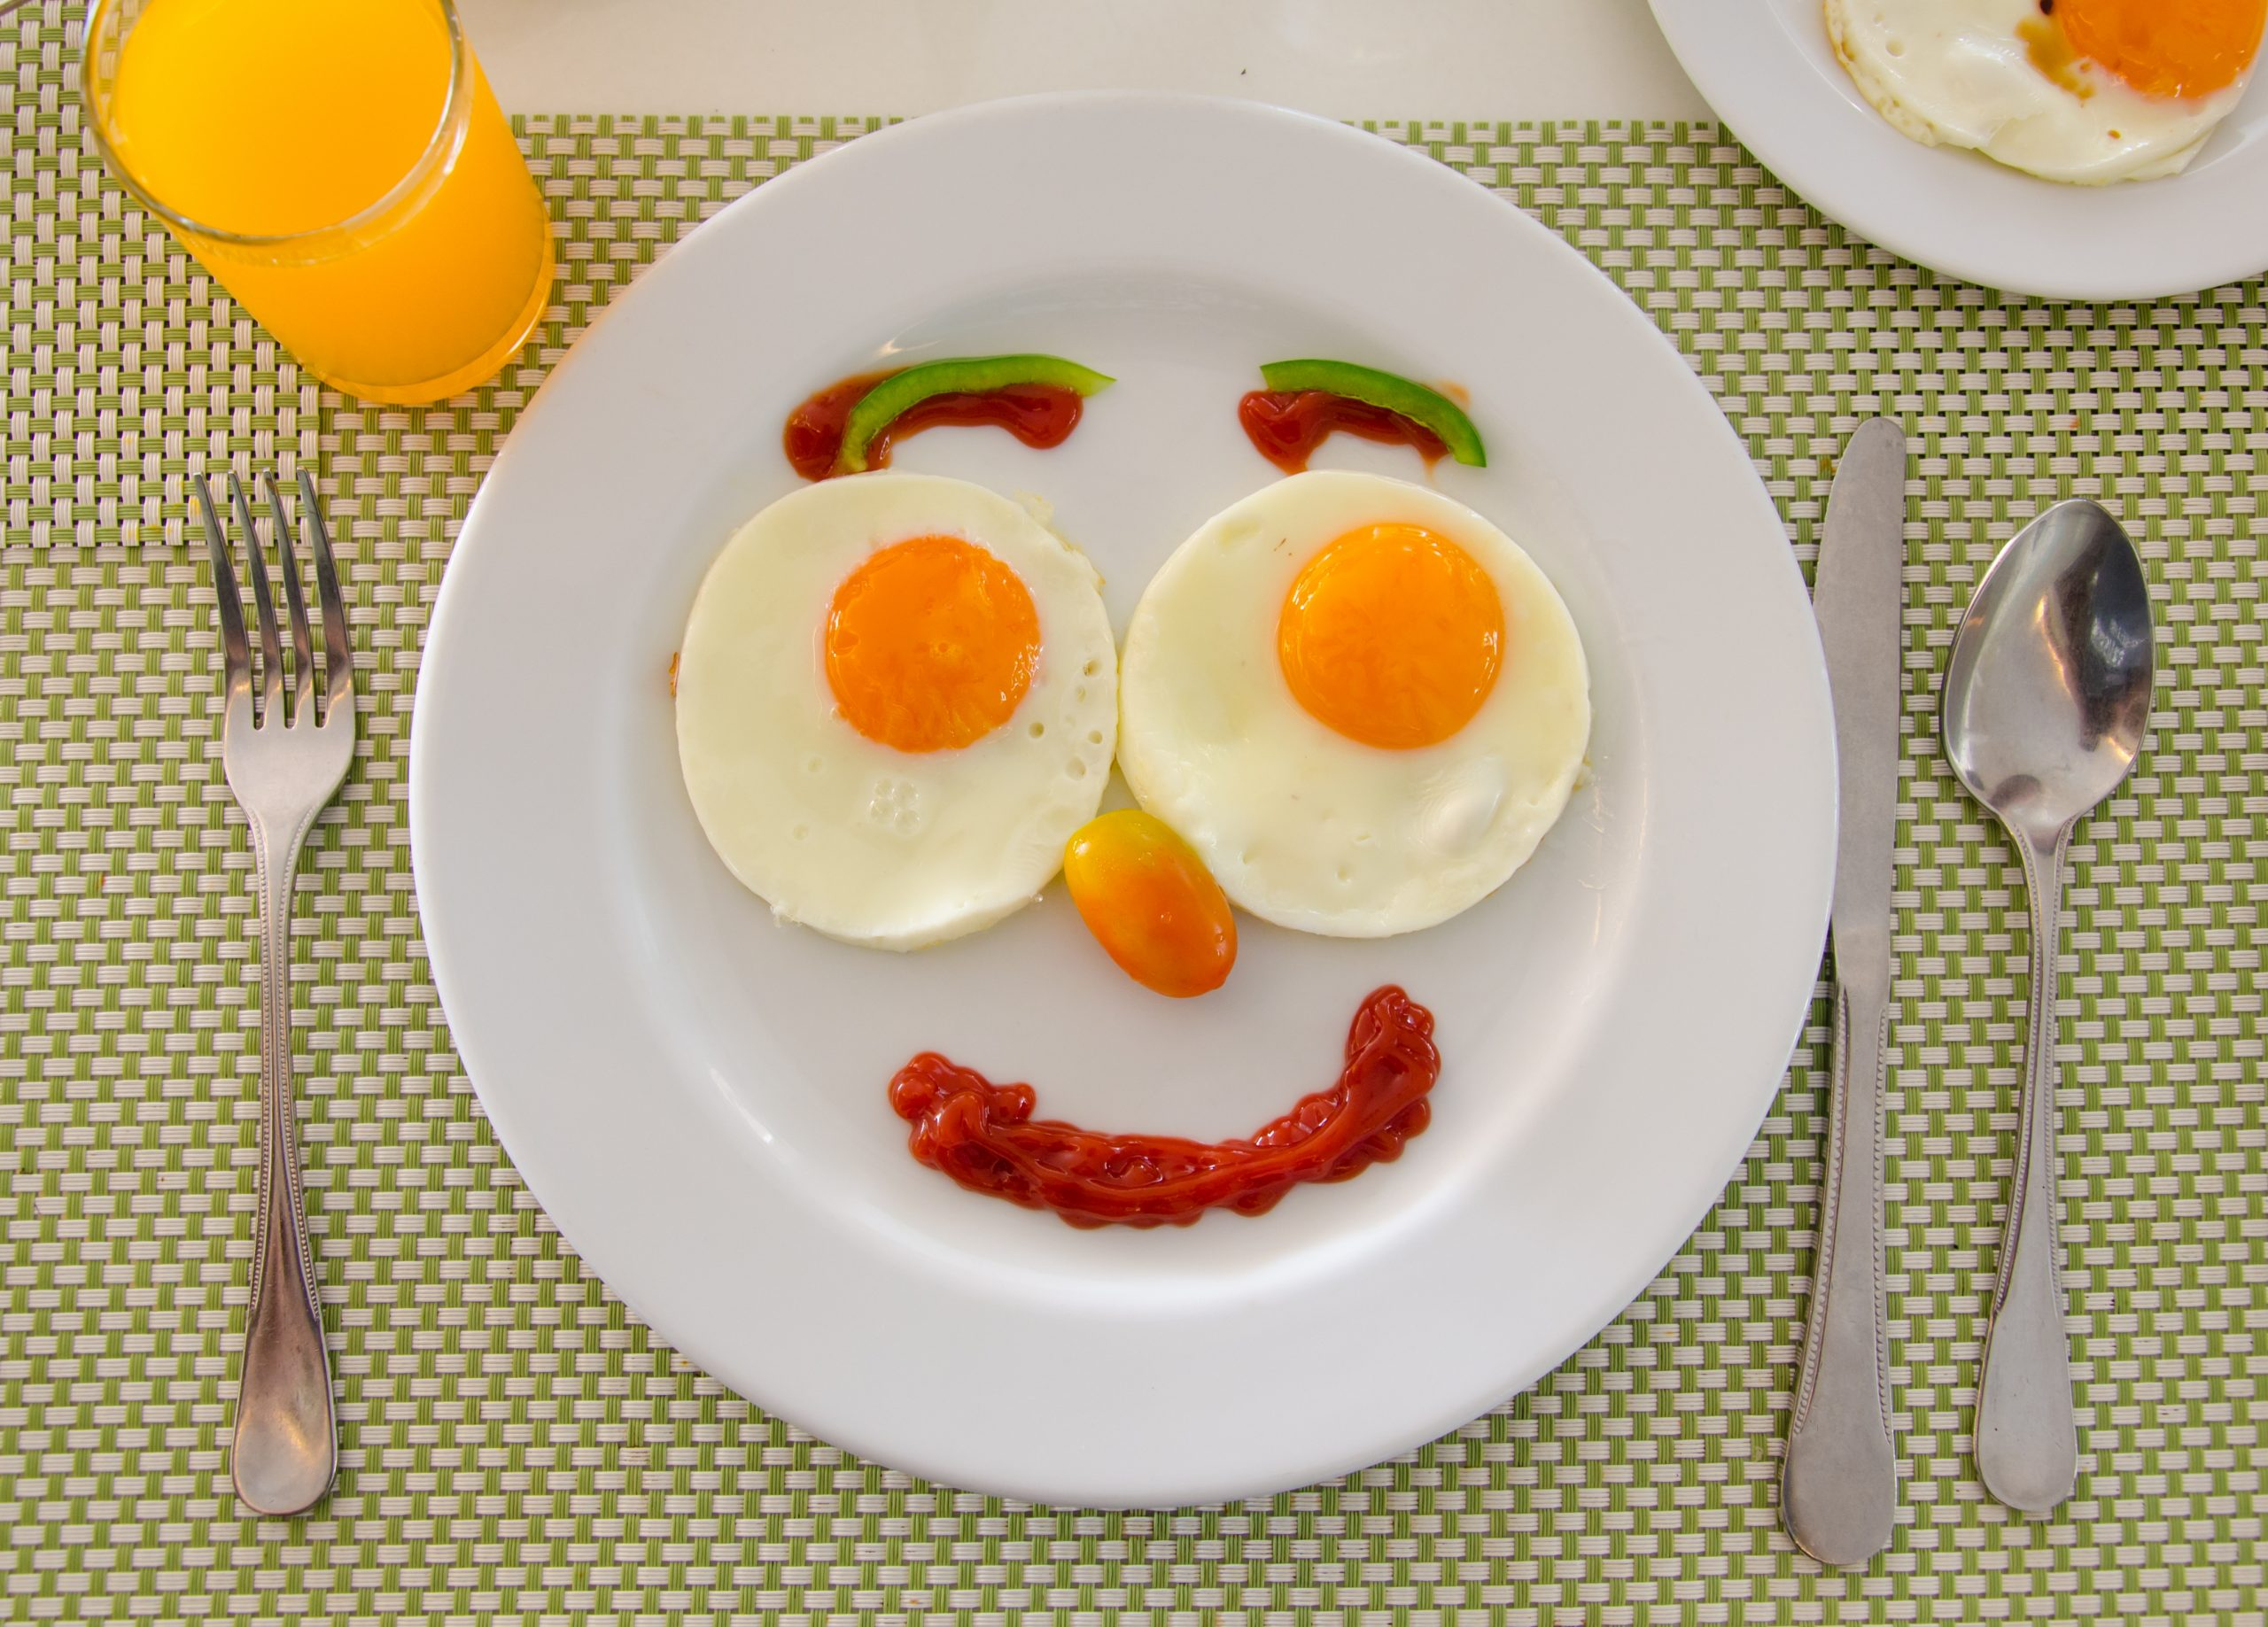 Good For You - Breakfast!